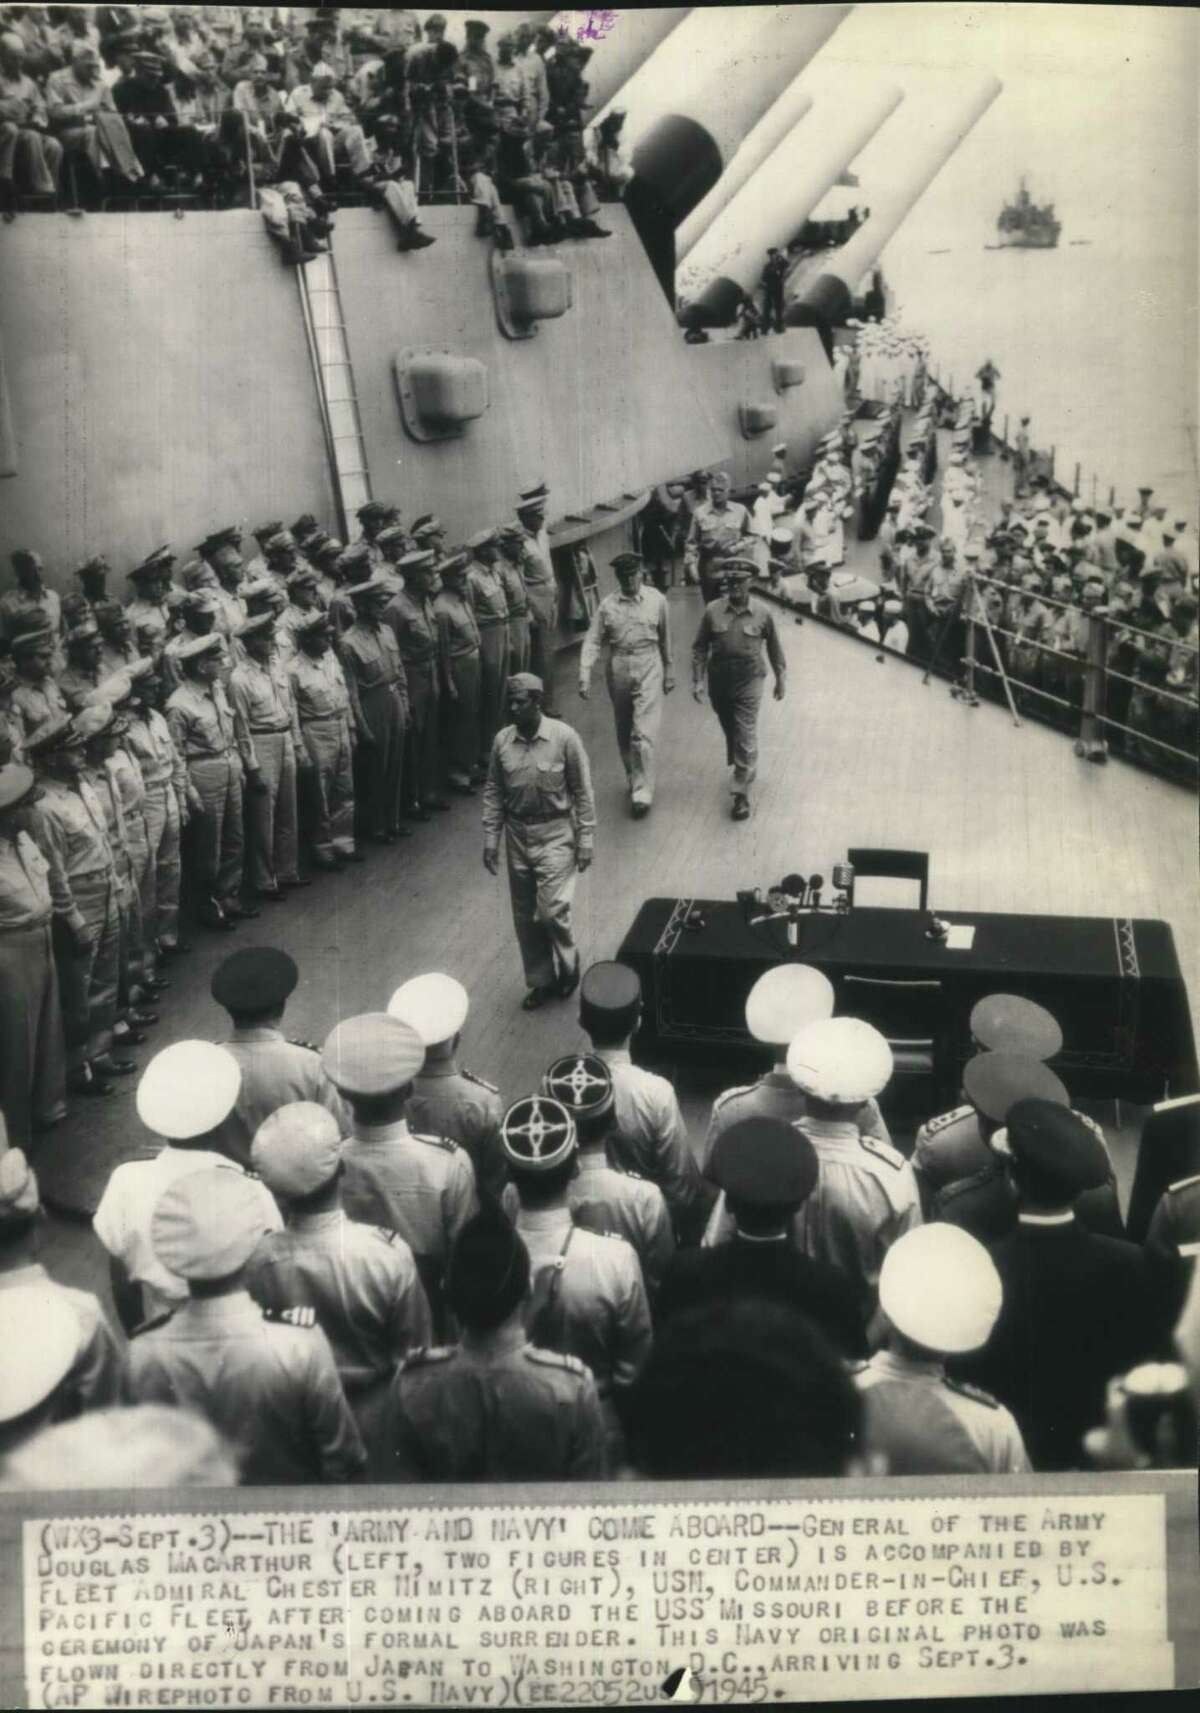 World War II - surrender - Japan - General of the Army Douglas MacArthur (left, two figures in center) is accompanied by Fleet Admiral Chester Nimitz (right), USN, Commander-in-Chief, US Pacific Fleet, after coming aboard the USS Missouri before the ceremony of Japan's formal surrender. This Navy original photo was flown directly from Japan to Washington DC, arriving September 3